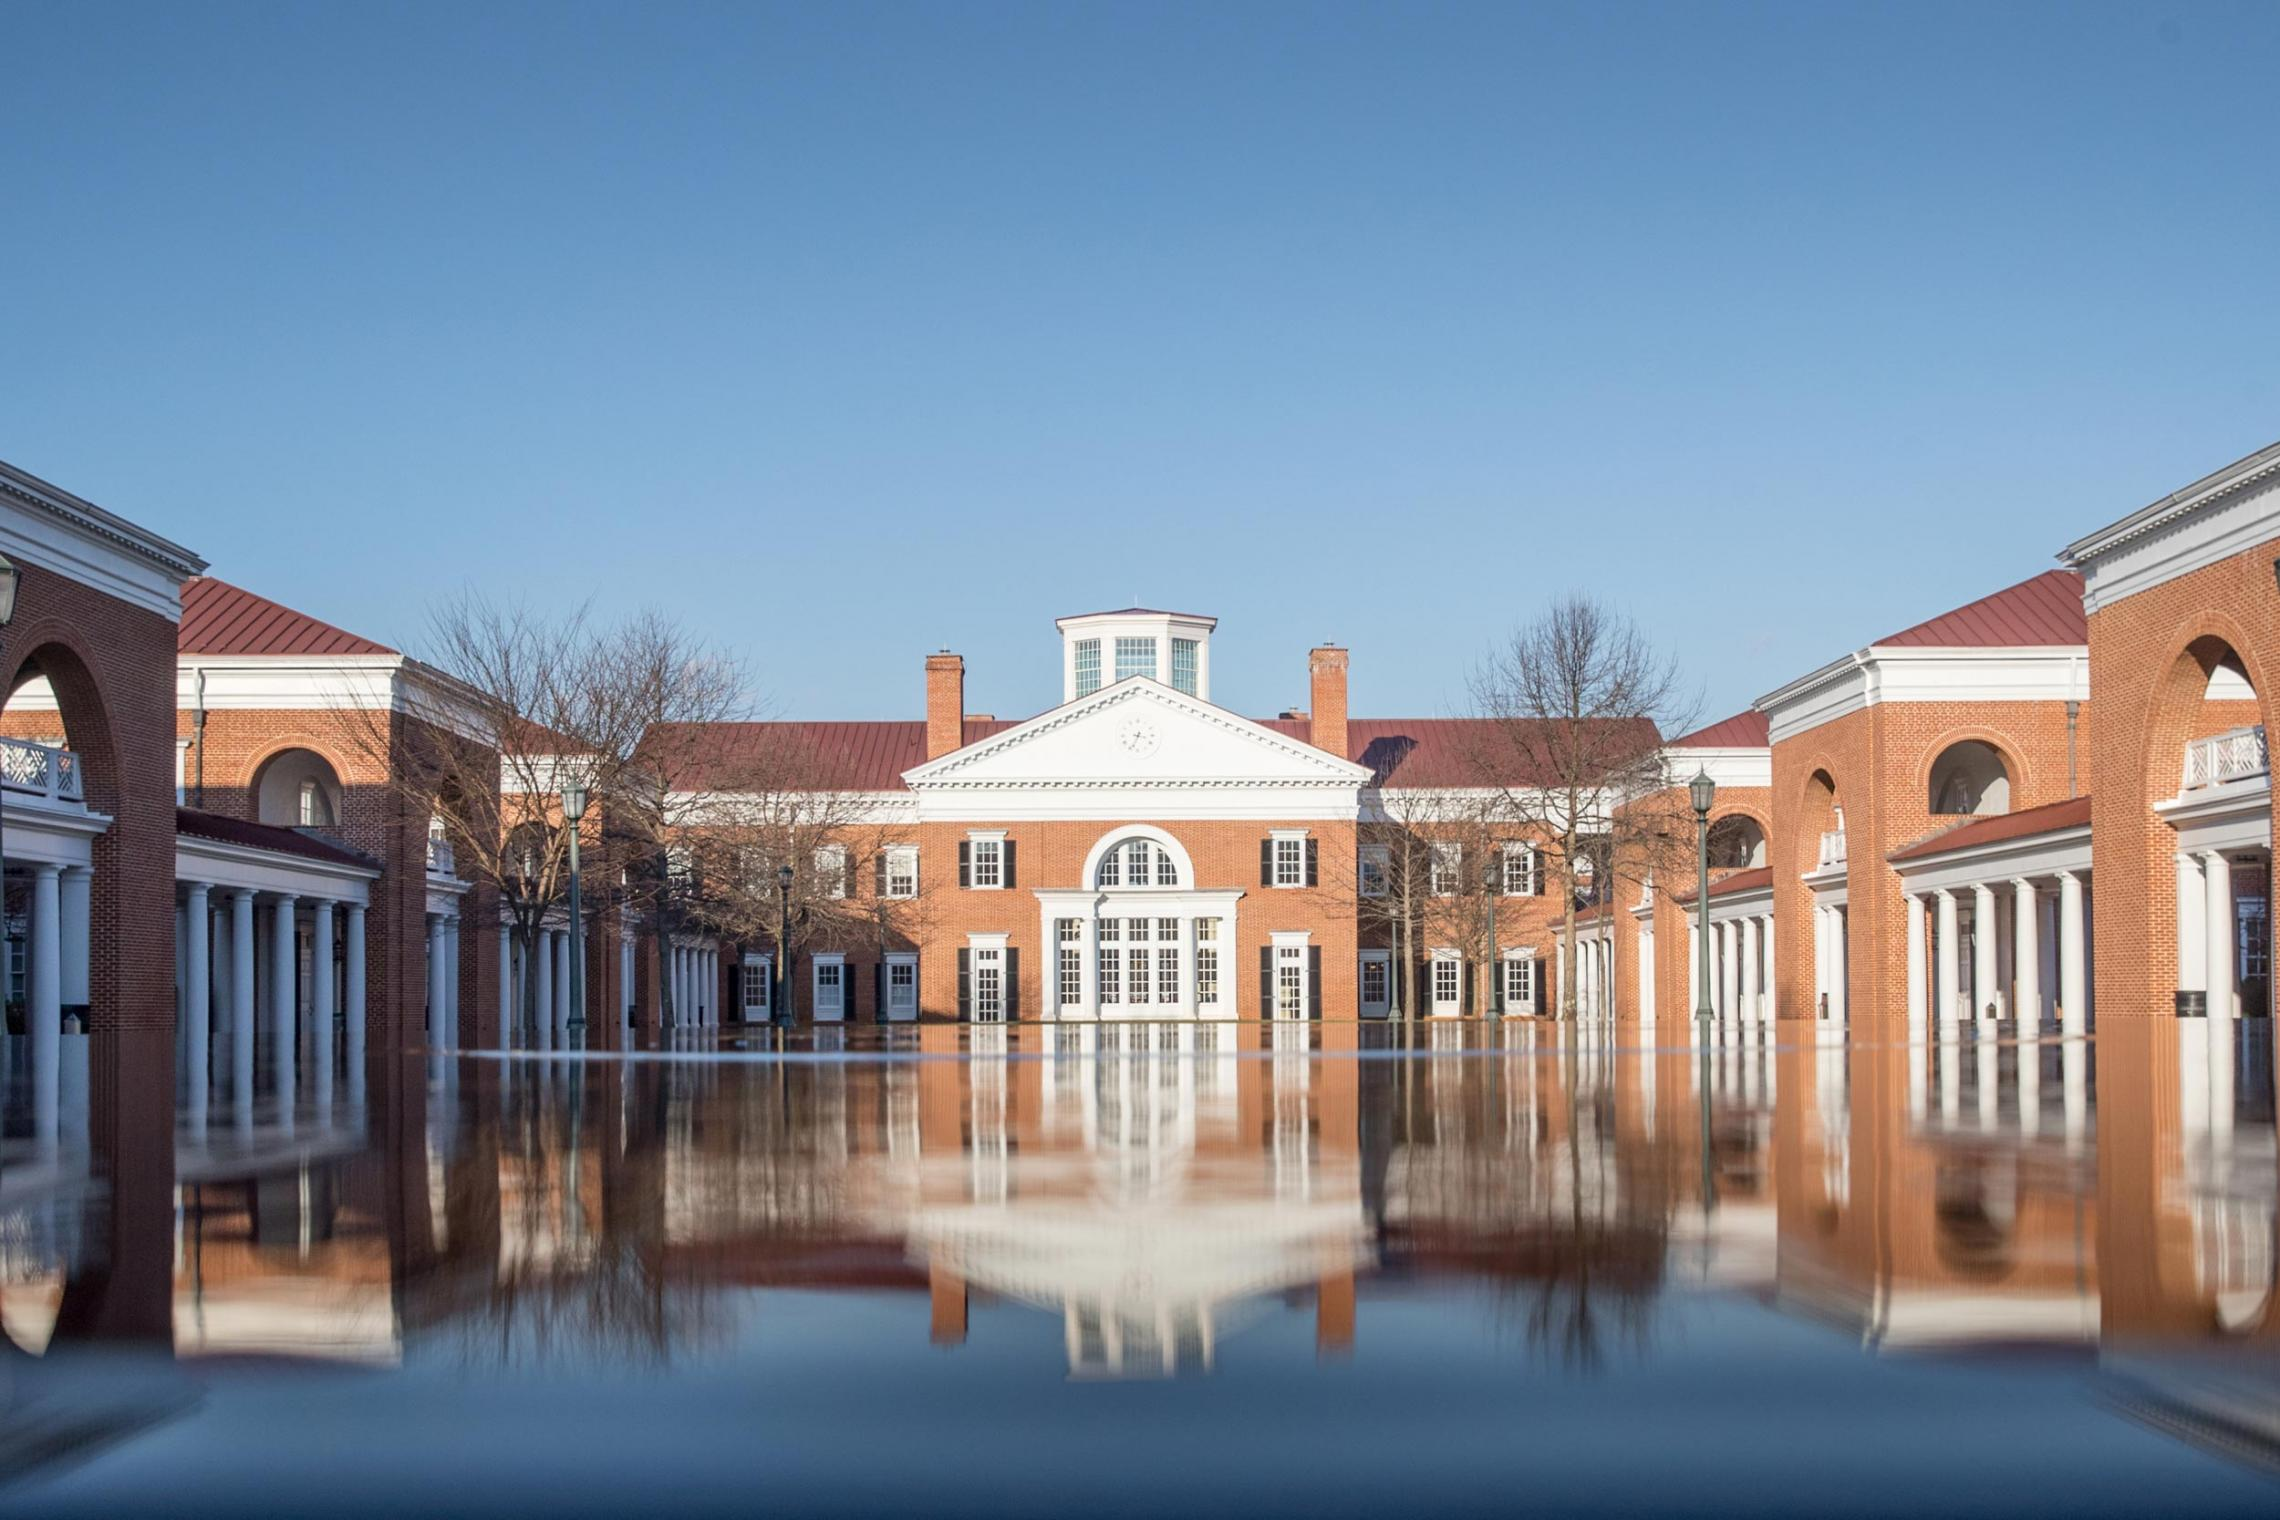 Darden Tops Global Rankings for Management, Corporate Social Responsibility